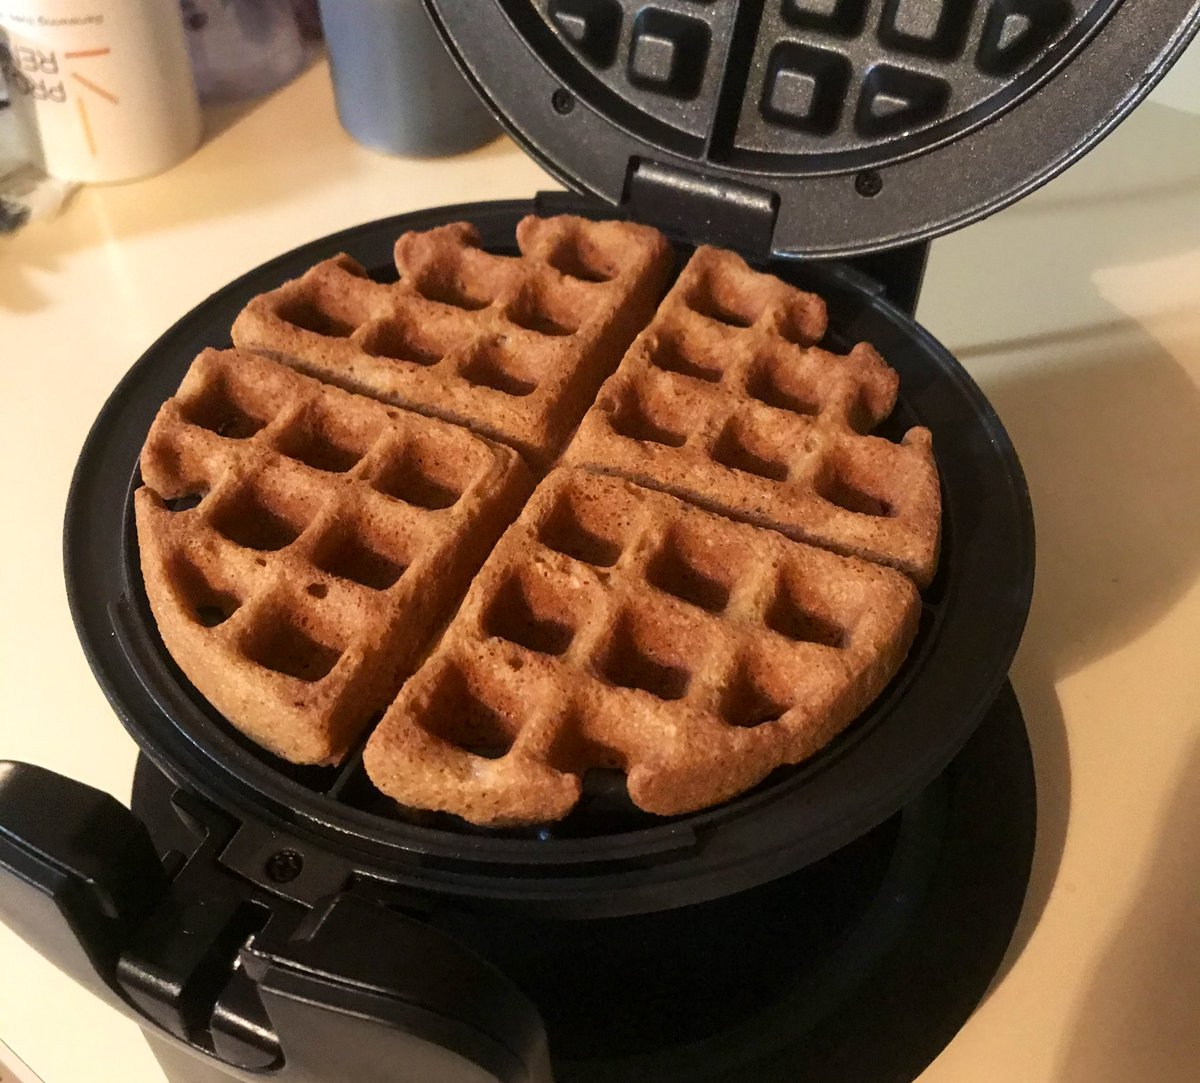 @Soxymamma Experimental waffles biscuits would have been better